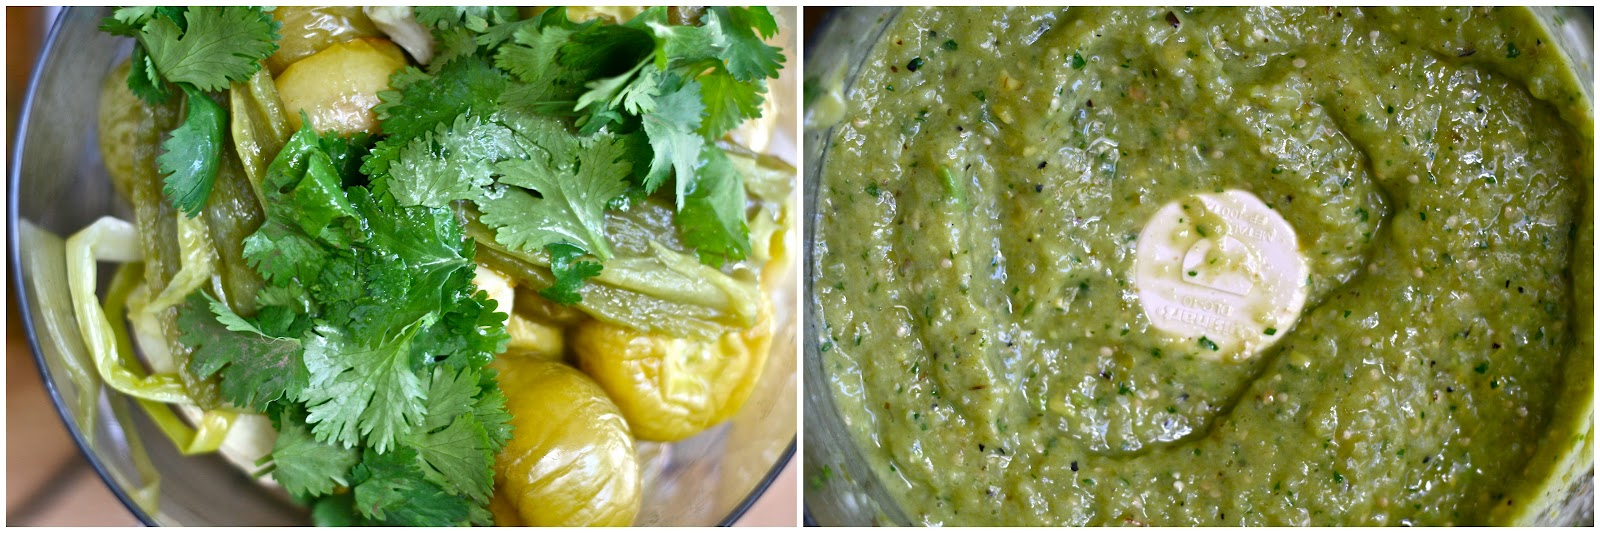 Tomatillo-Avocado Salsa With Tortilla Chips Recipes — Dishmaps